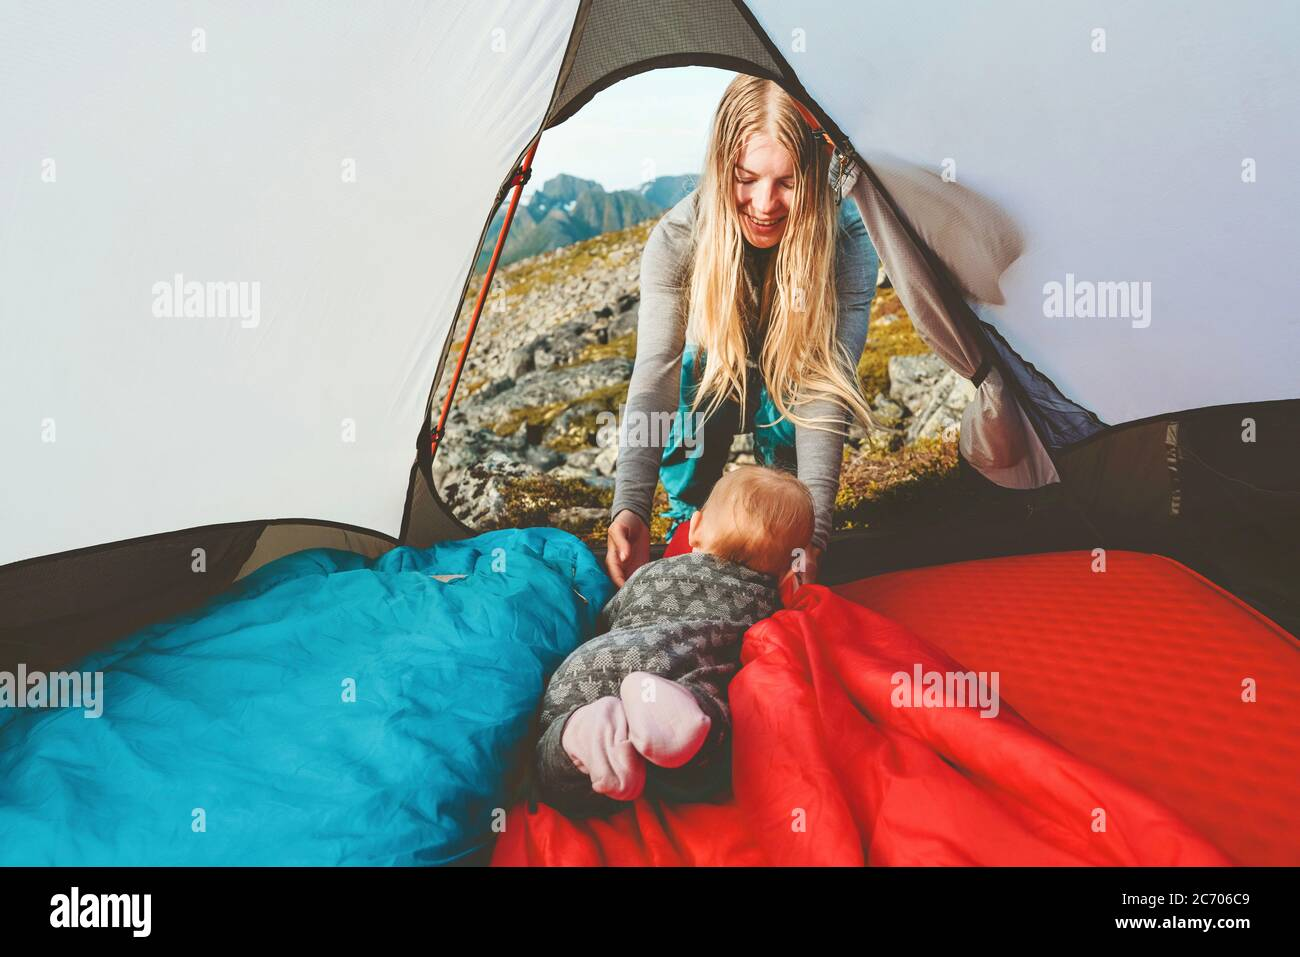 Baby and mother in camping tent family travel vacation adventure lifestyle child hiking with parents outdoor gear equipment Stock Photo